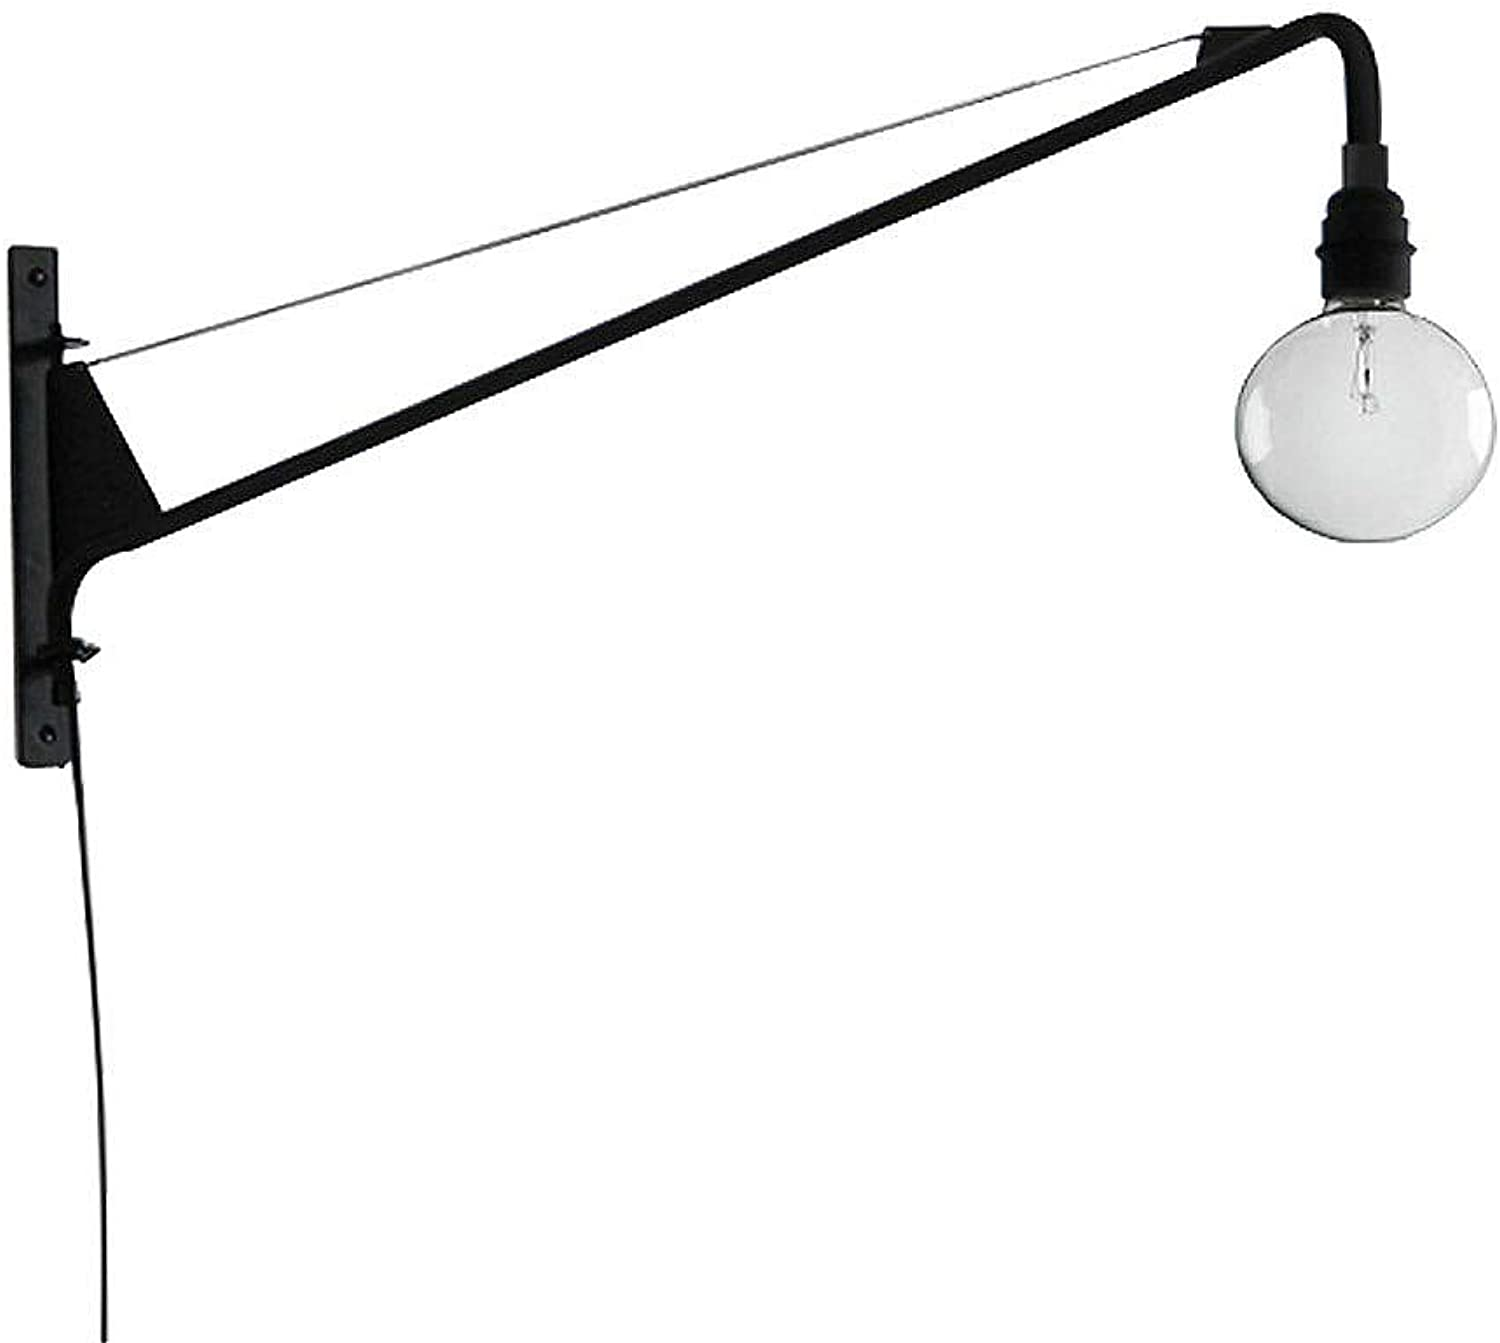 SUSUO Lighting Open Bulb Style Swing Wall Lamp with 24  inches Black Swing Arm,Unique Plug-in Sconces Wall Lighting